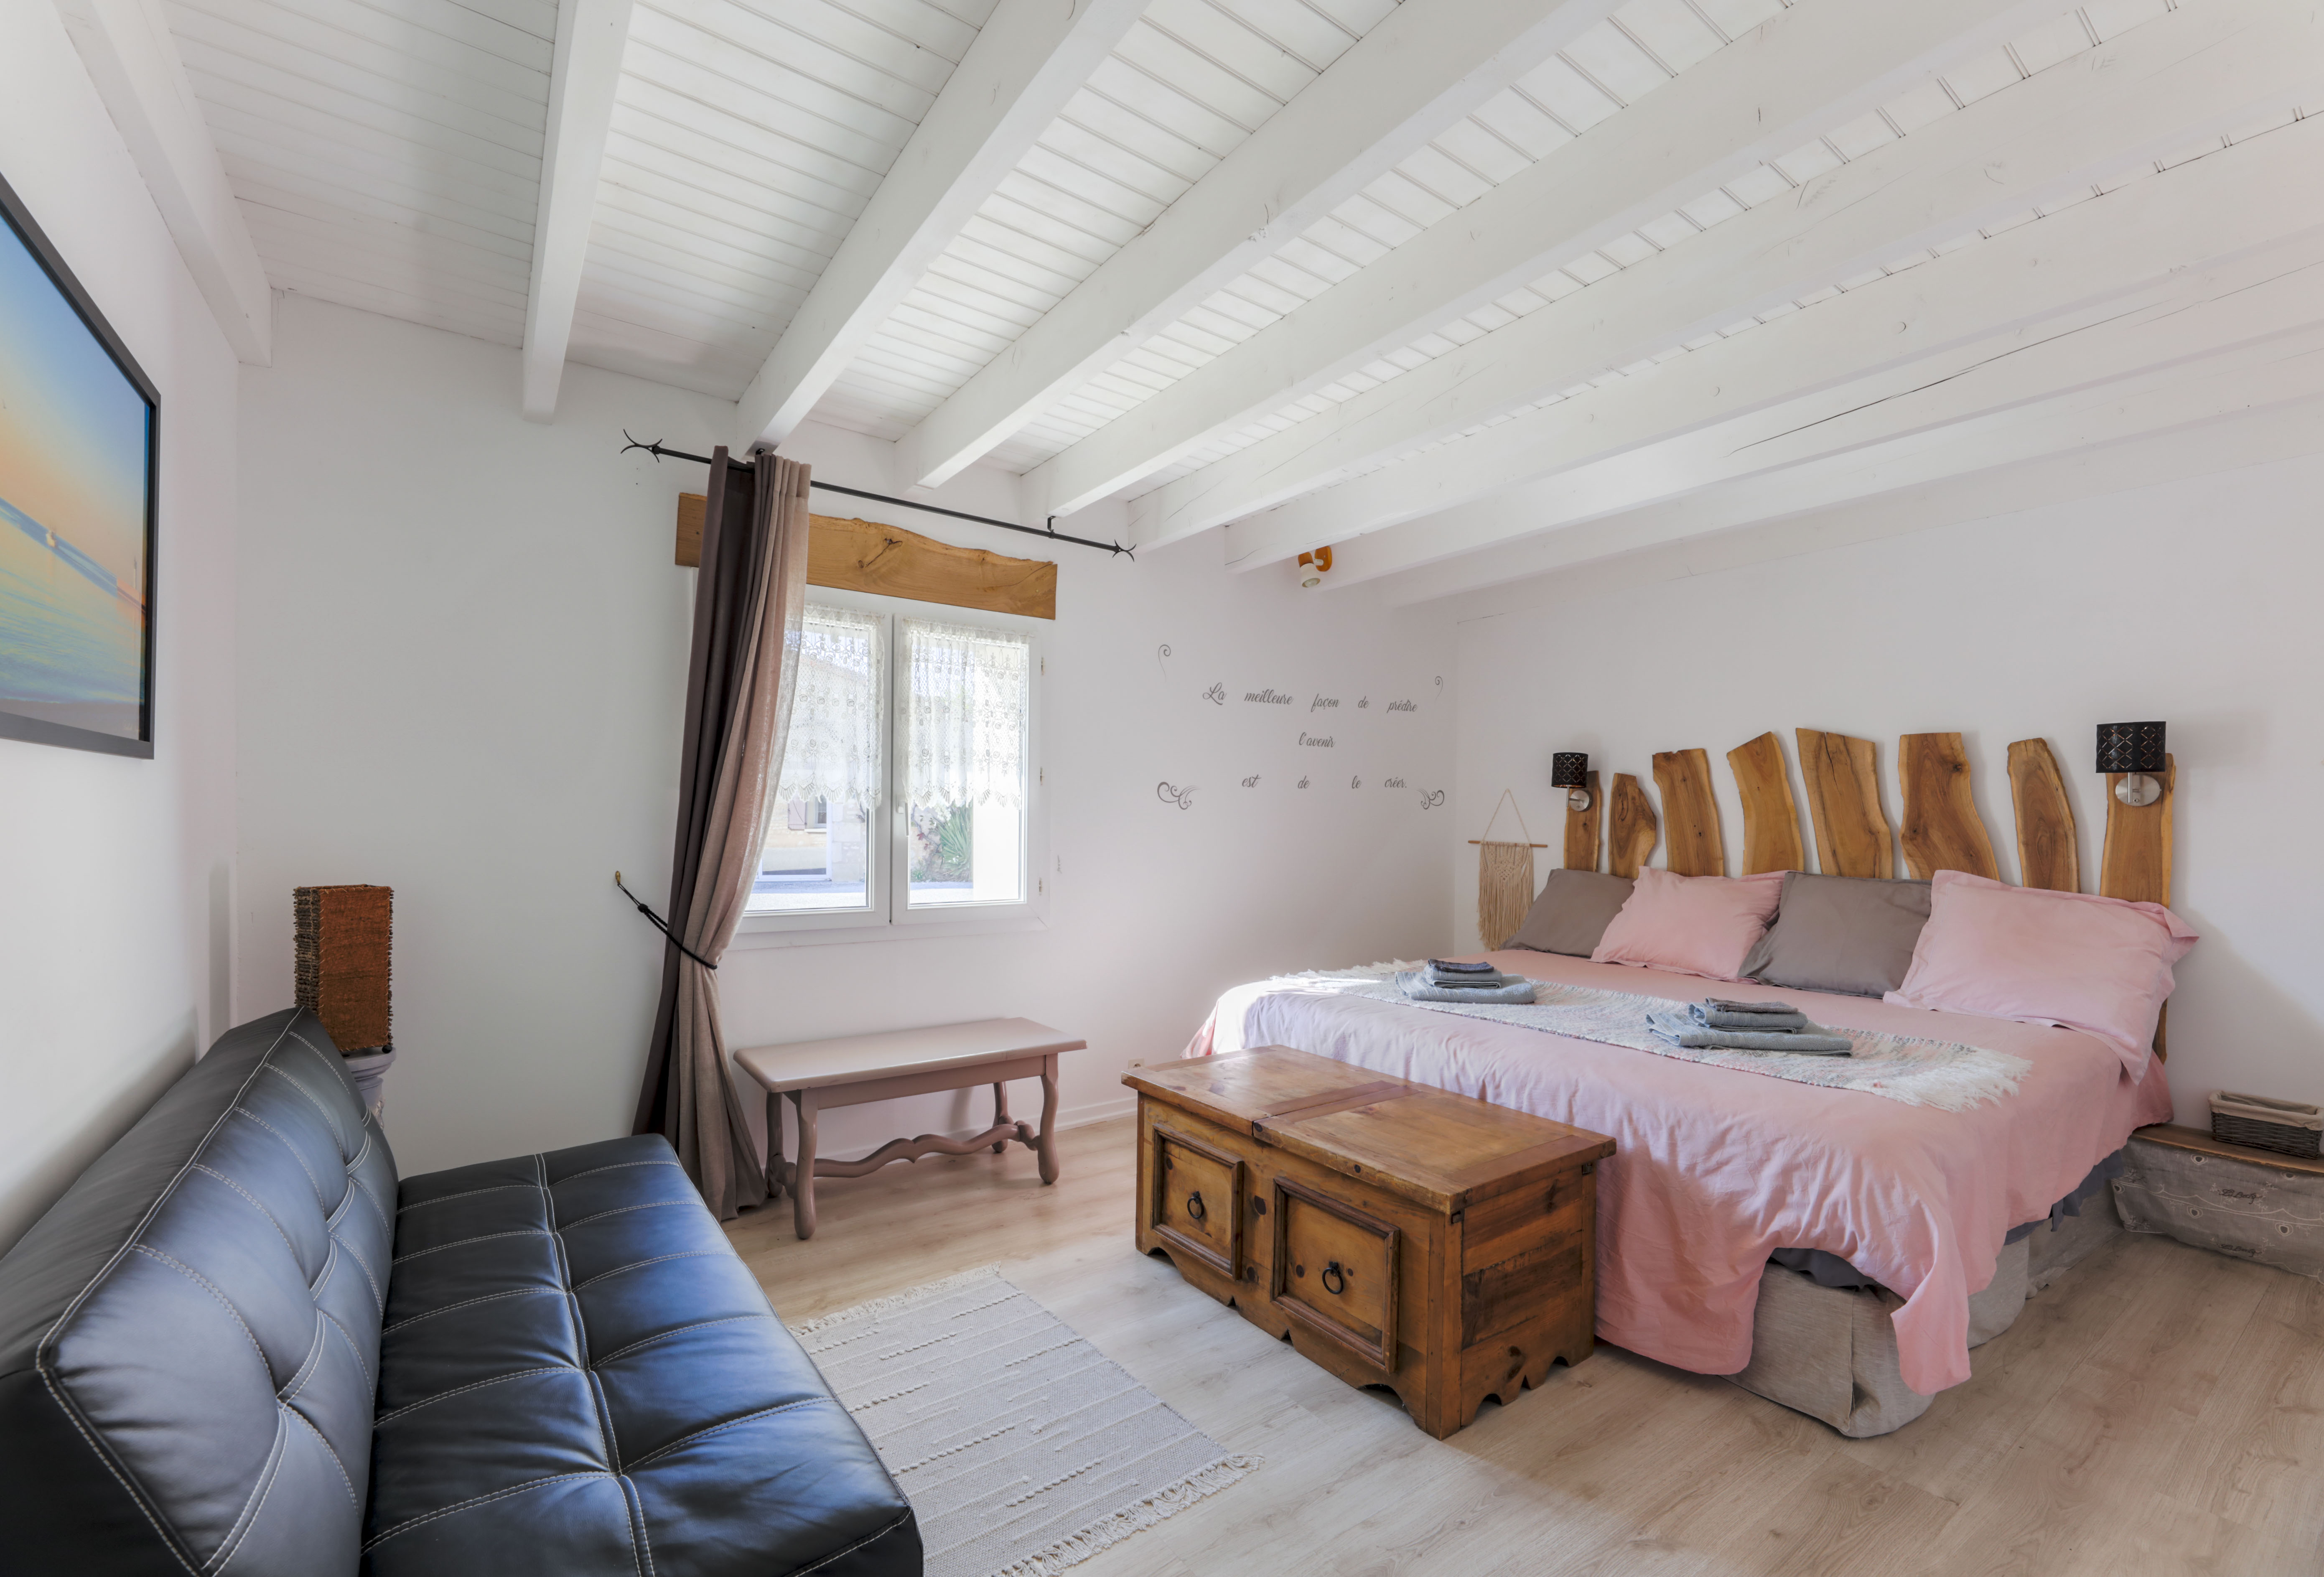 Chambre D Hote Chauvigny B B The Wild Seeds Chauvigny Accommodation In La Vienne